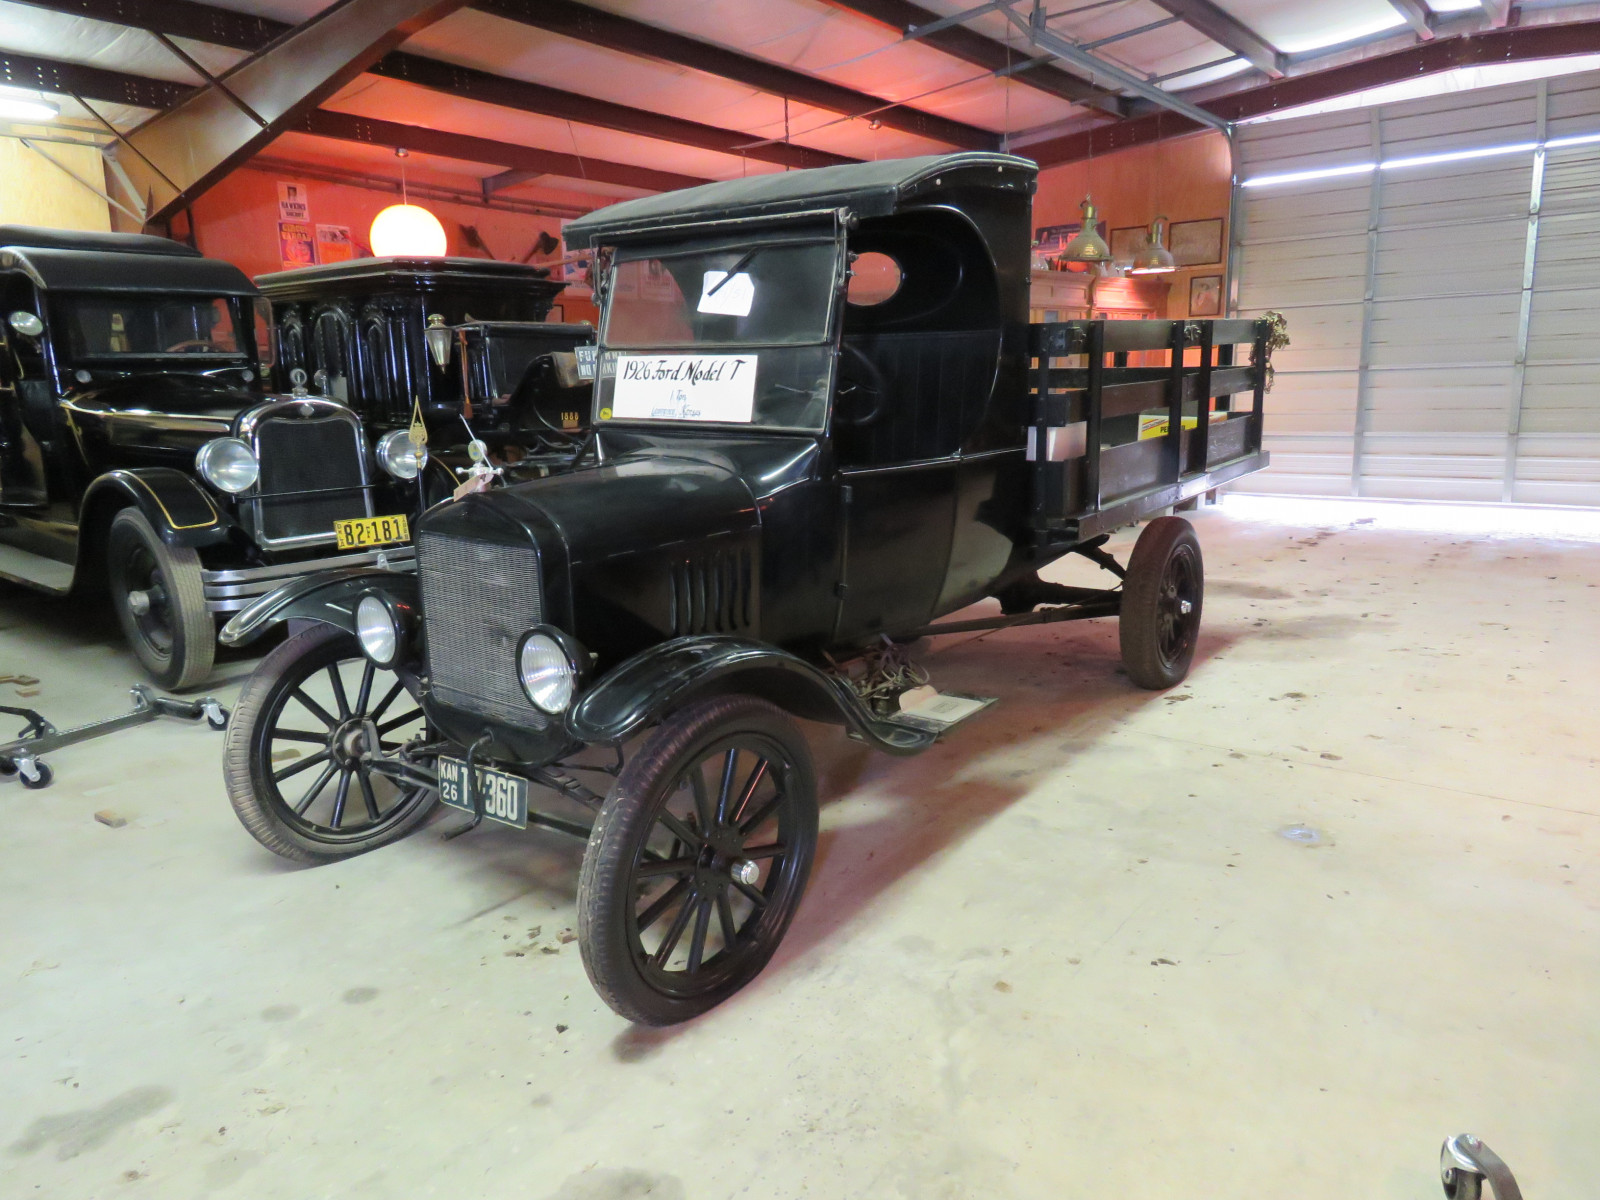 1926 Ford Model T Stakebed Truck - Image 1